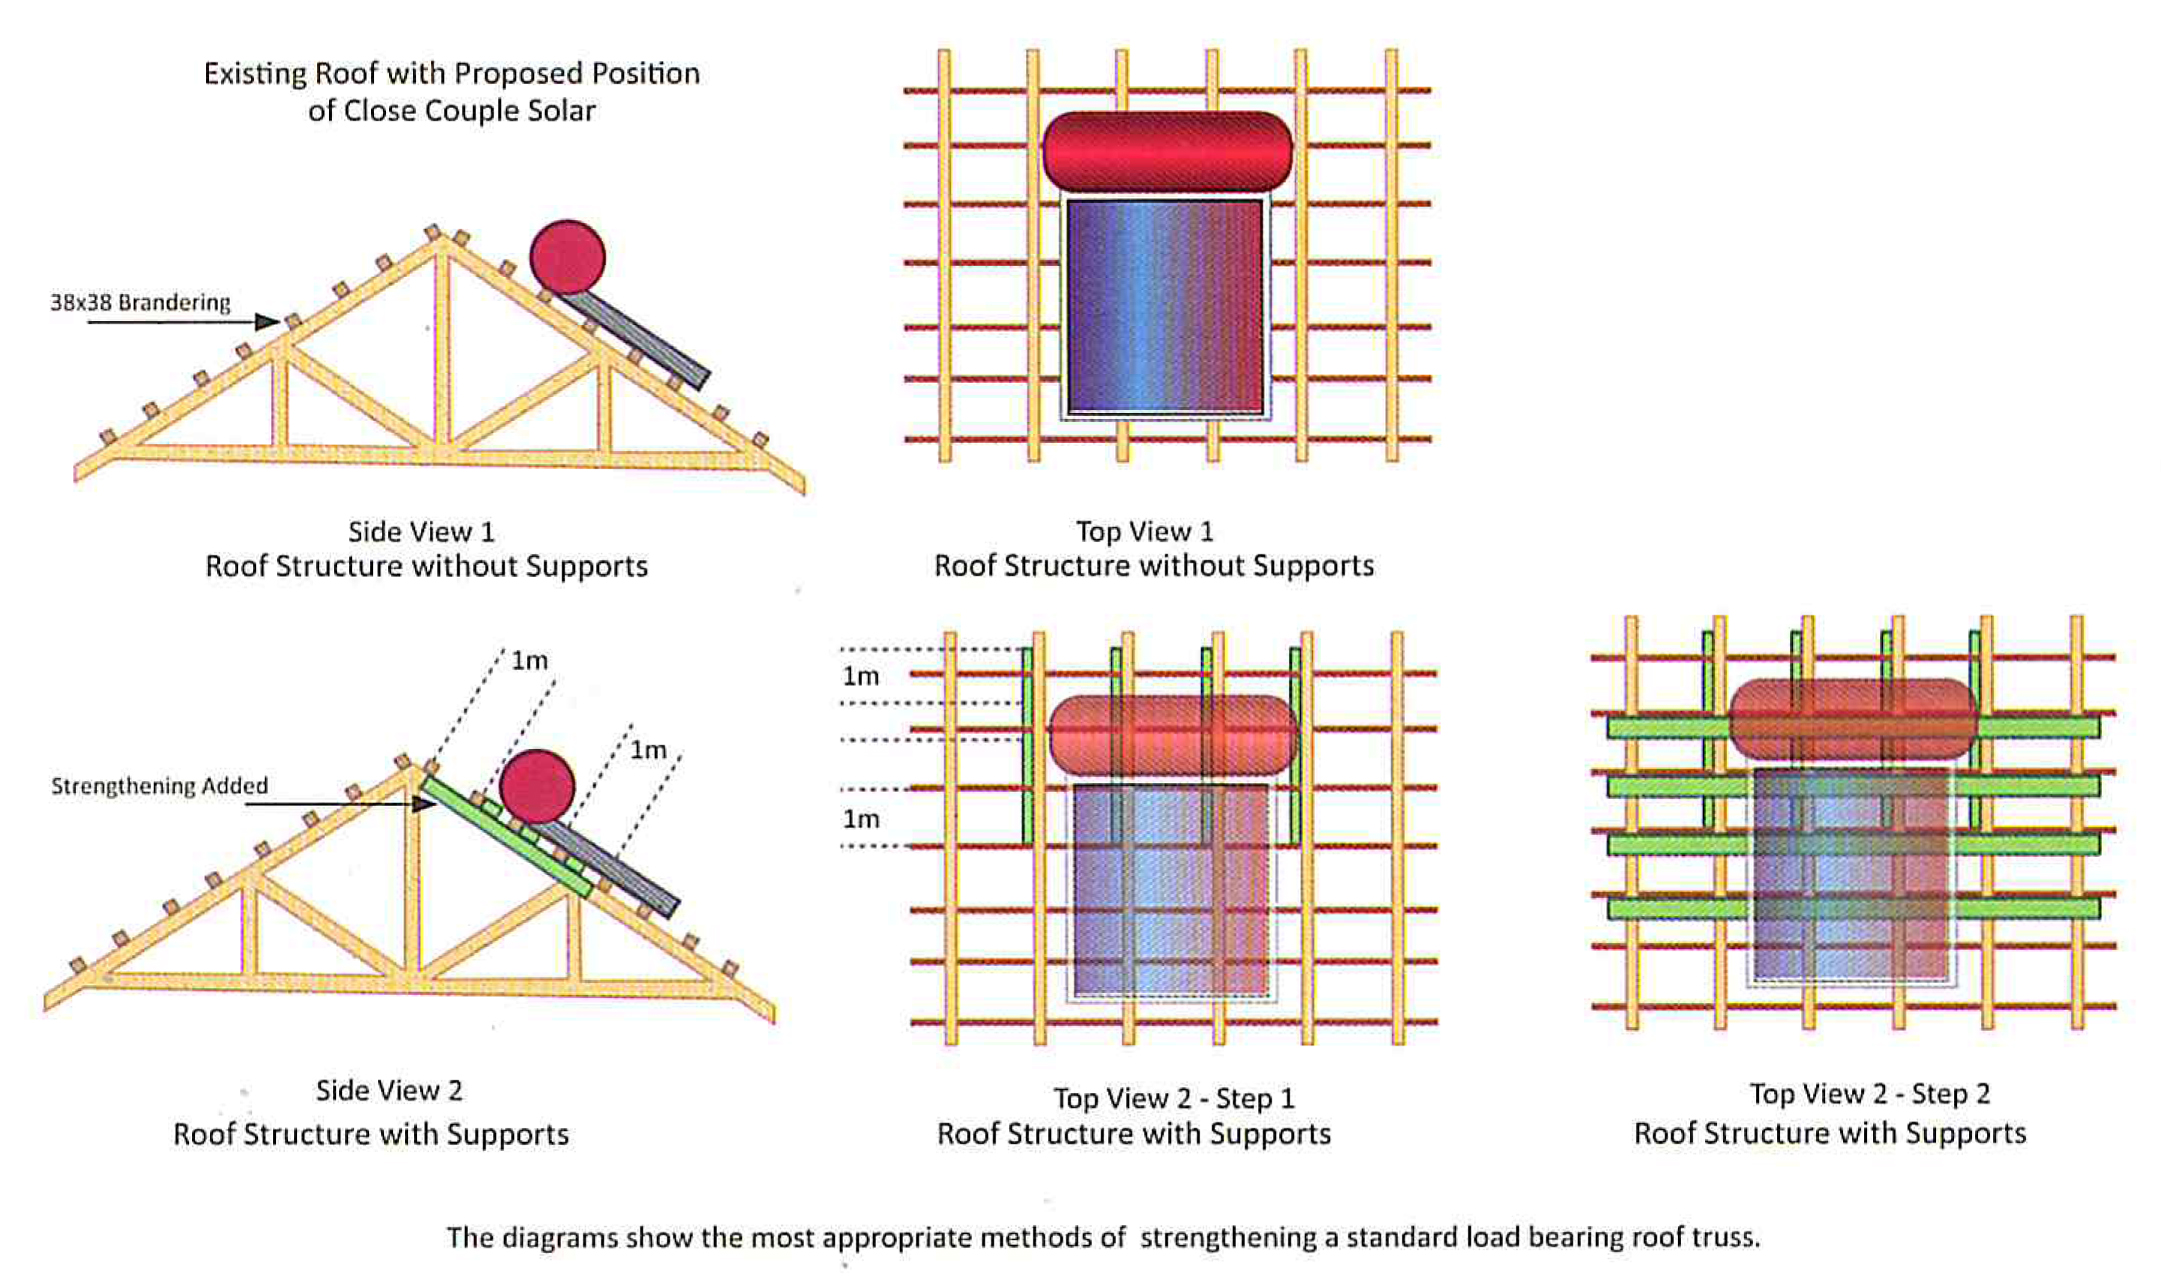 Strengthening Of Existing Roof Structure For Solar Geysers